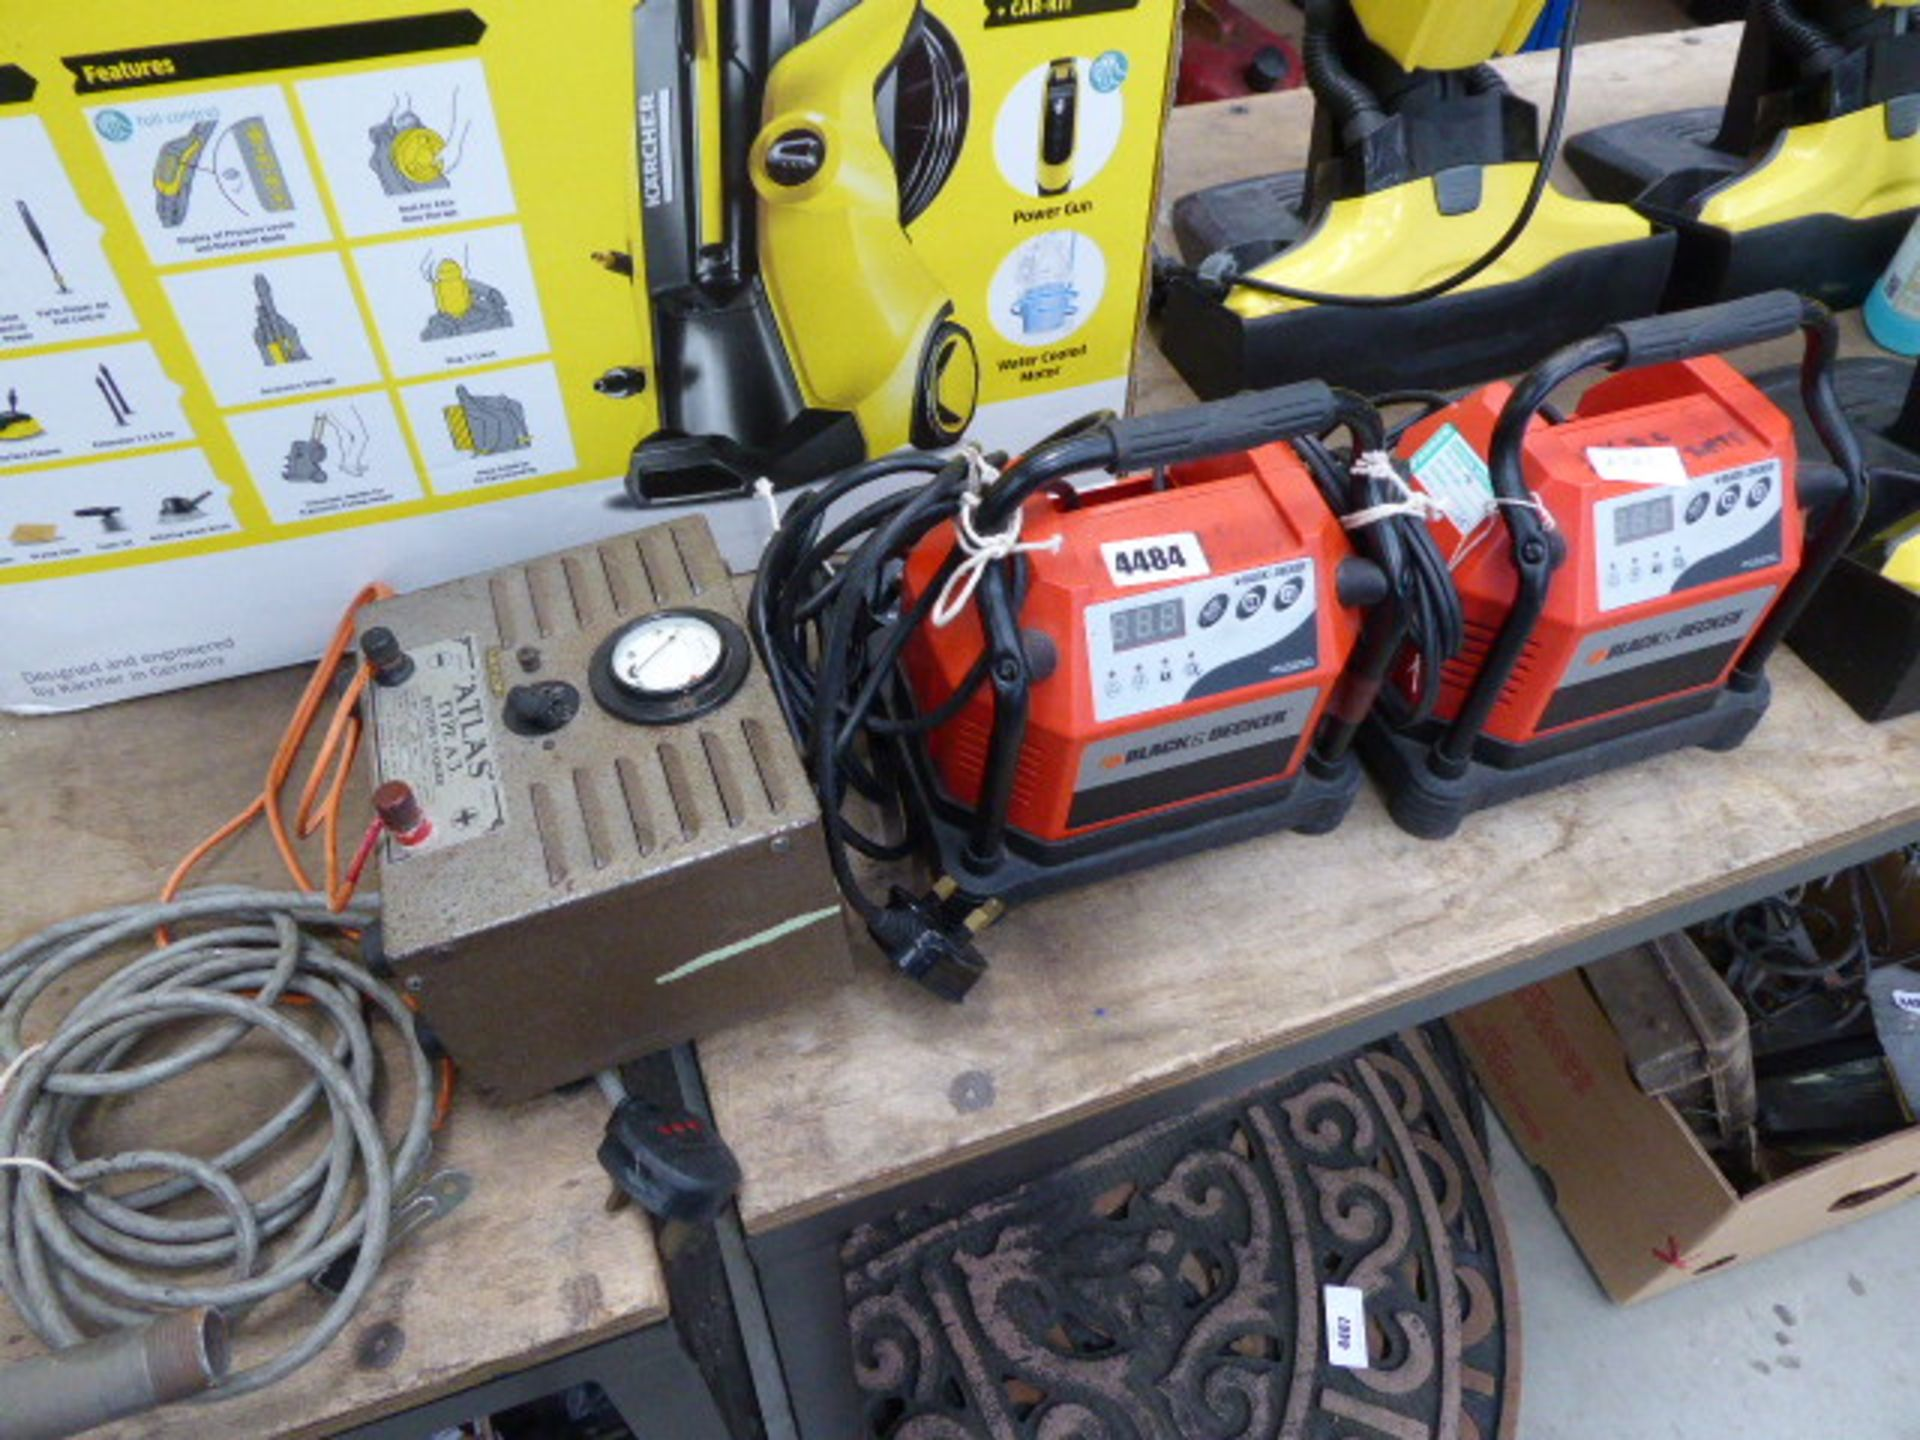 Lot 4484 - 2 Black and Decker chargers and an Atlas battery charger